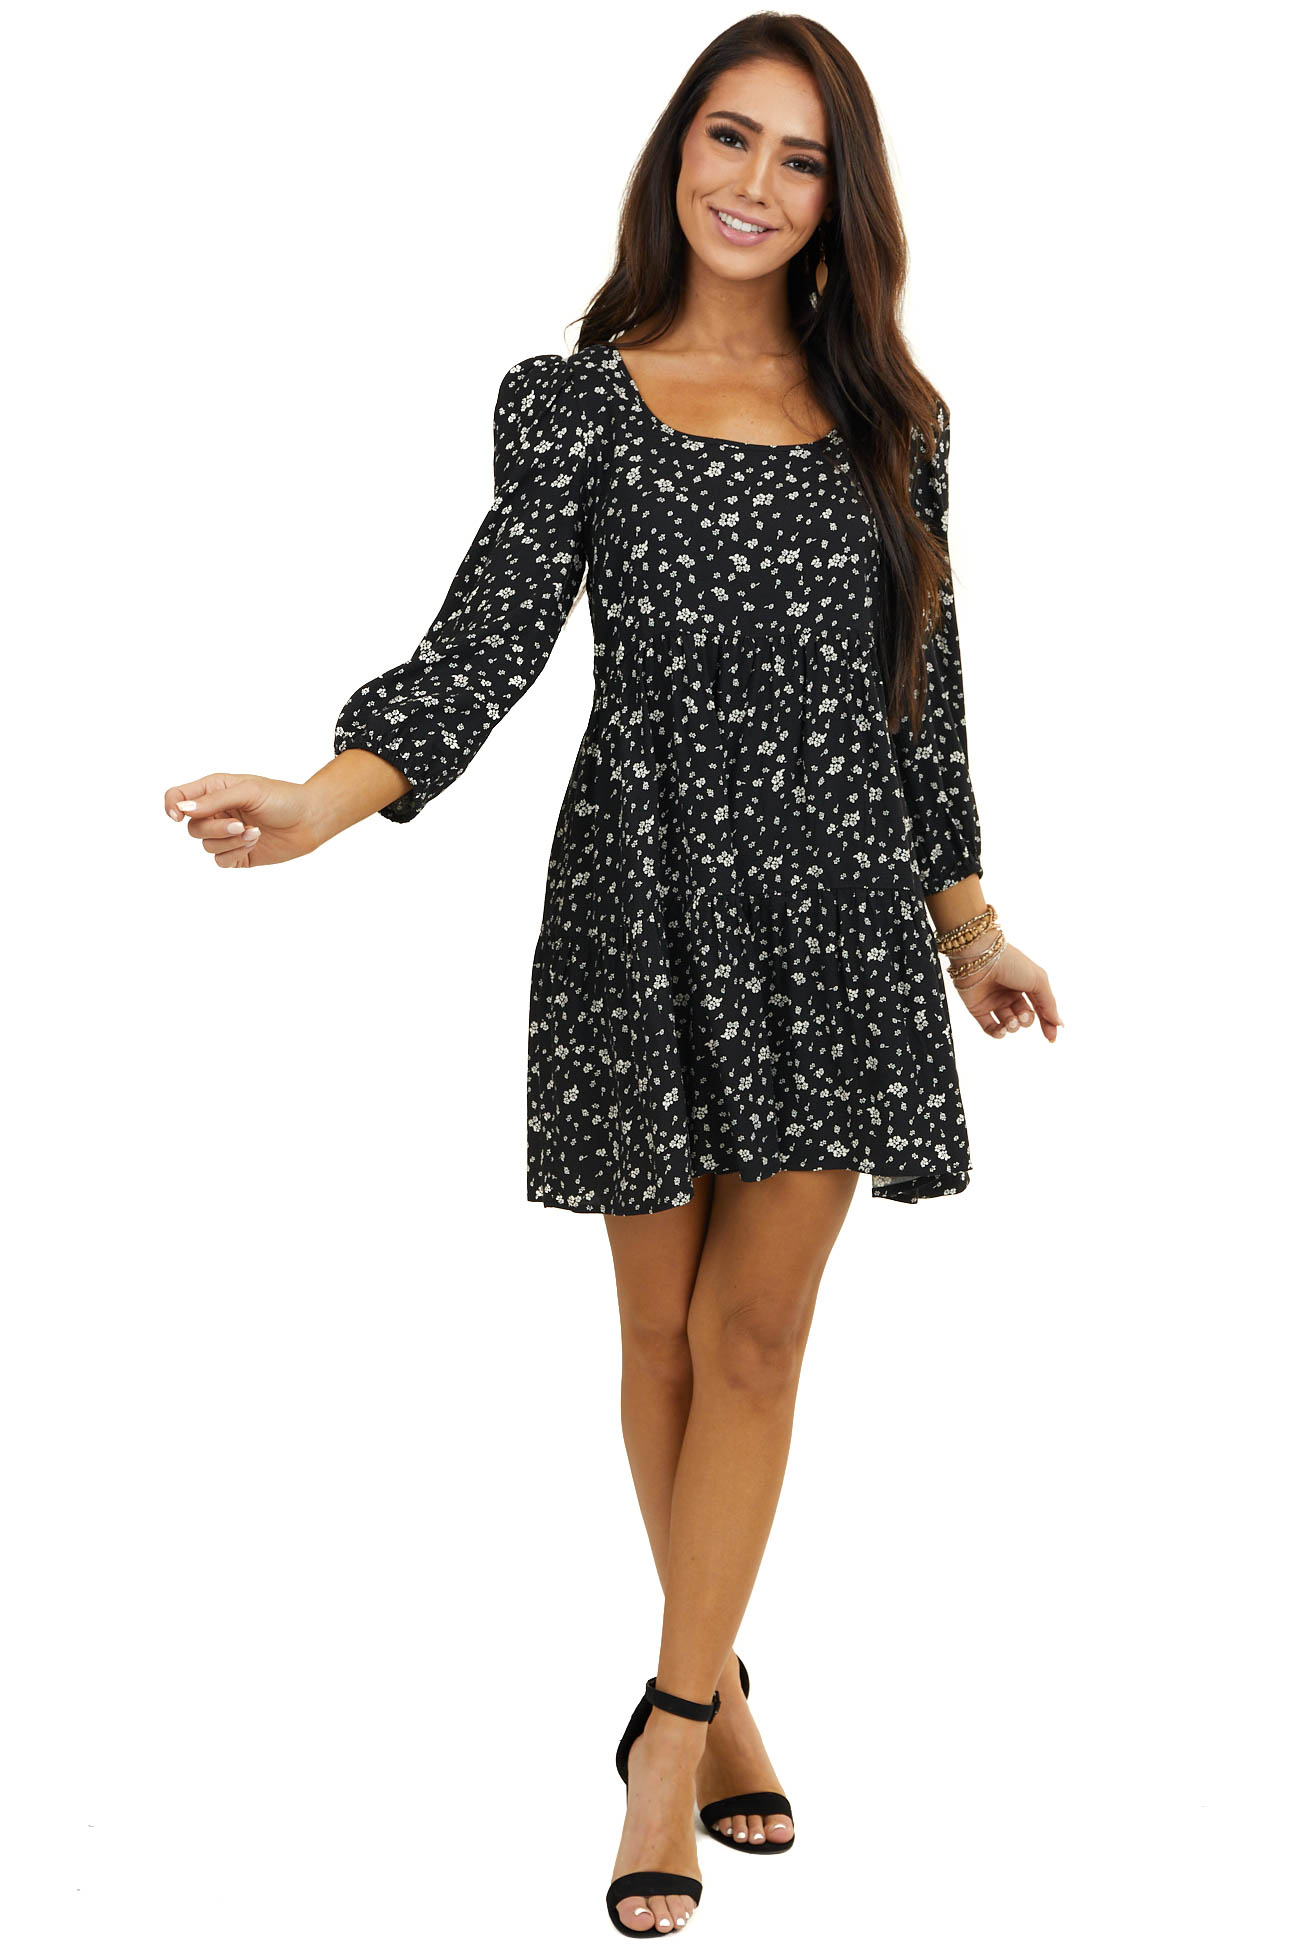 Black and White Floral Babydoll Dress with Bubble Sleeves